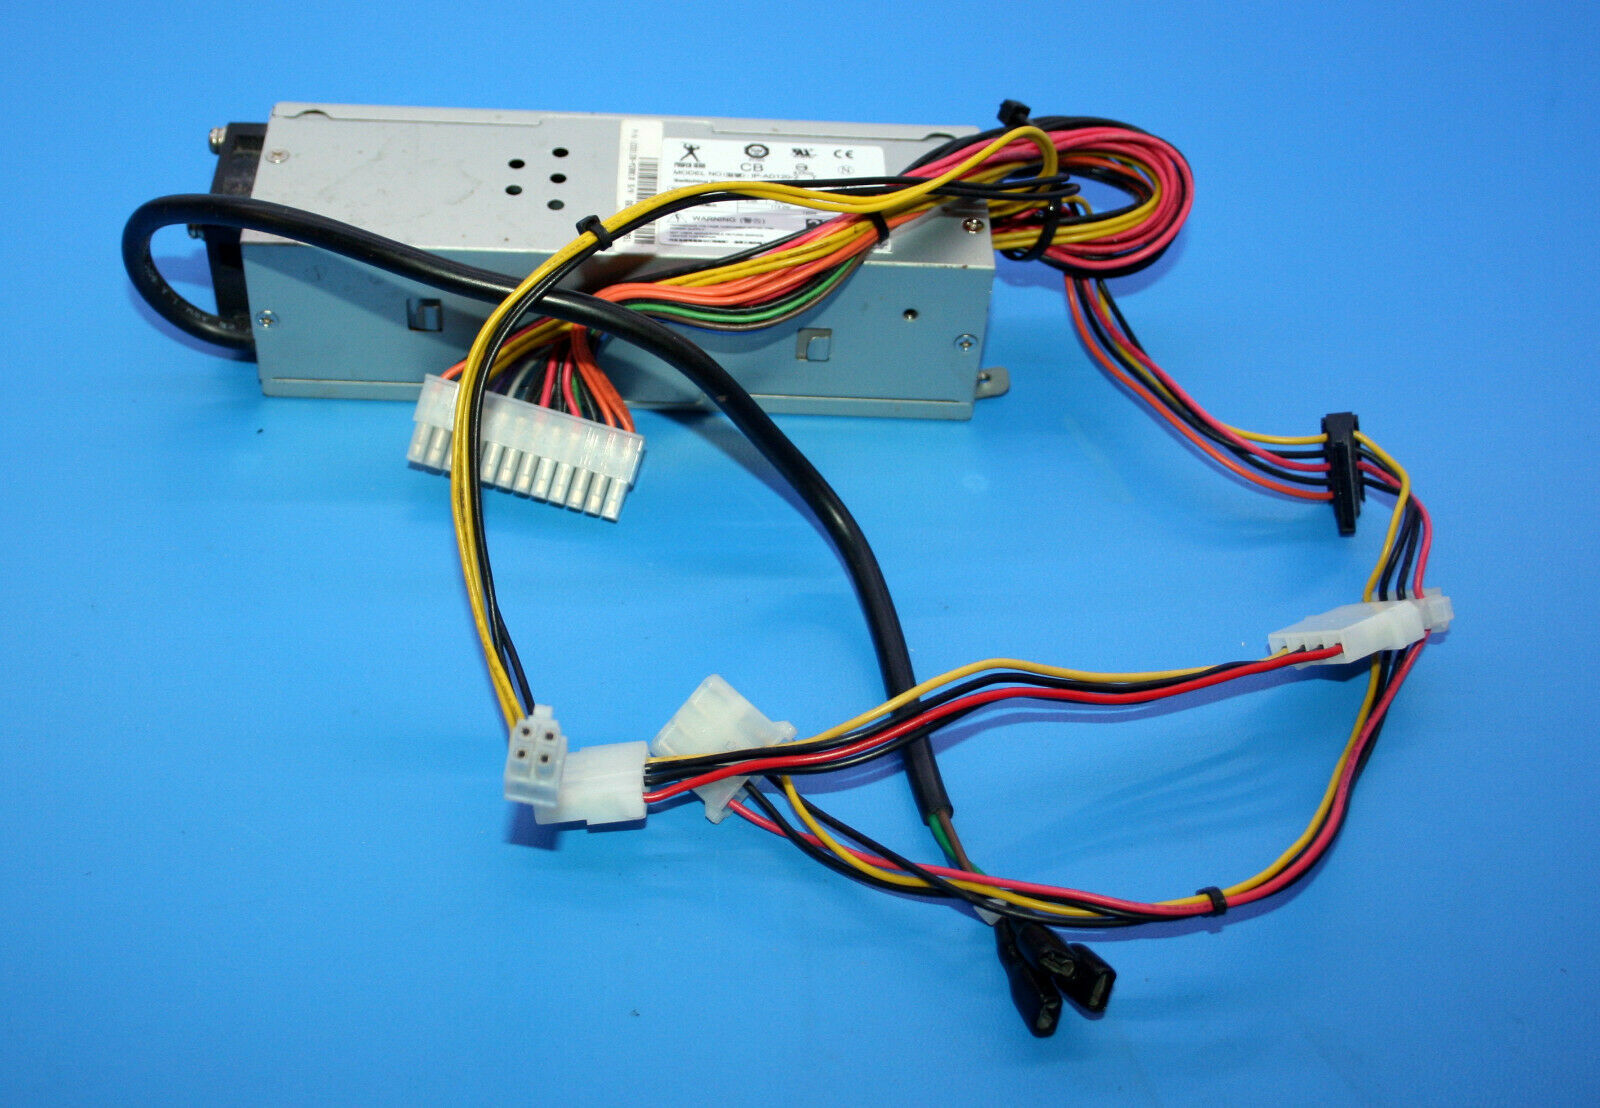 Primary image for Power Man IP-AD120-2 T Power Supply - Tested & Working - Warranty